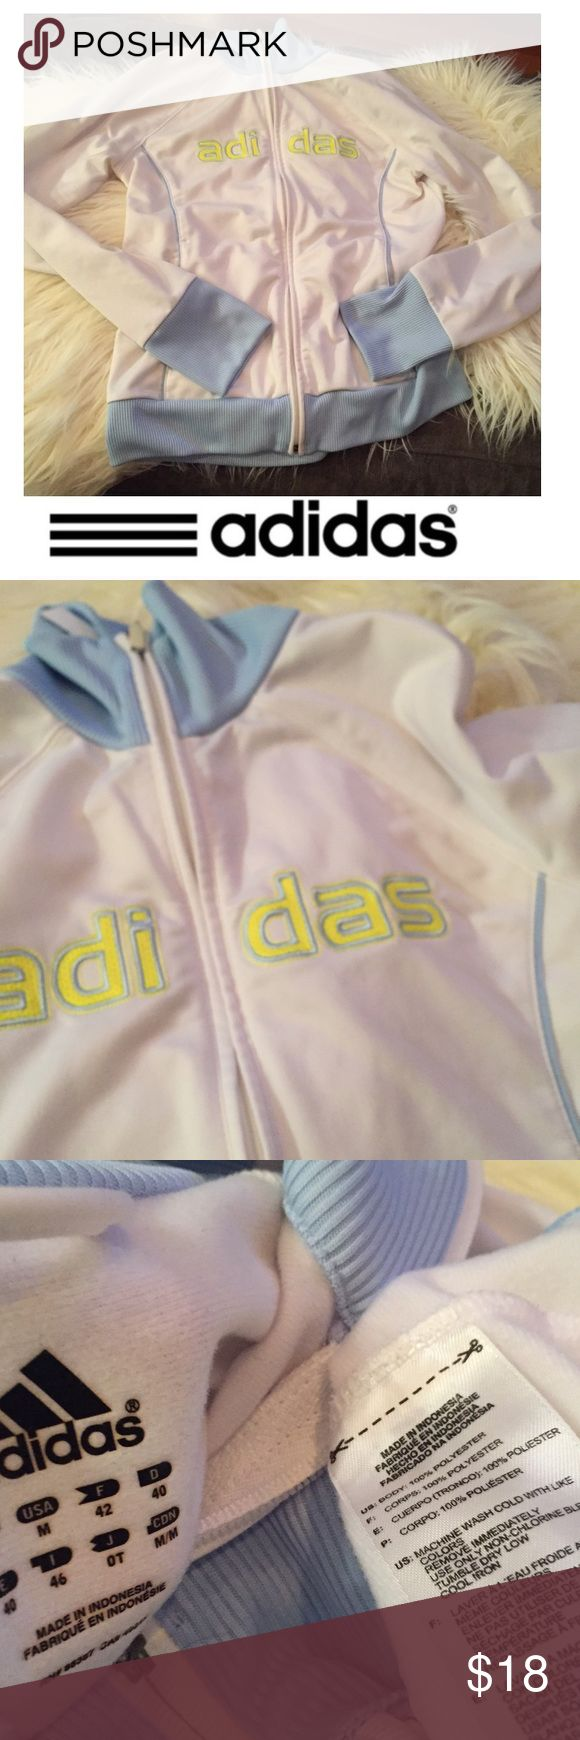 Adidas White & Baby Blue Zip Up Athletic Jacket Adidas White & Baby Blue Zip Up Athletic Jacket. 18 inch bust. 24 inches long. Yellow letting. Gently worn. Great condition. Feel free to make an offer or bundle & save! Adidas Jackets & Coats